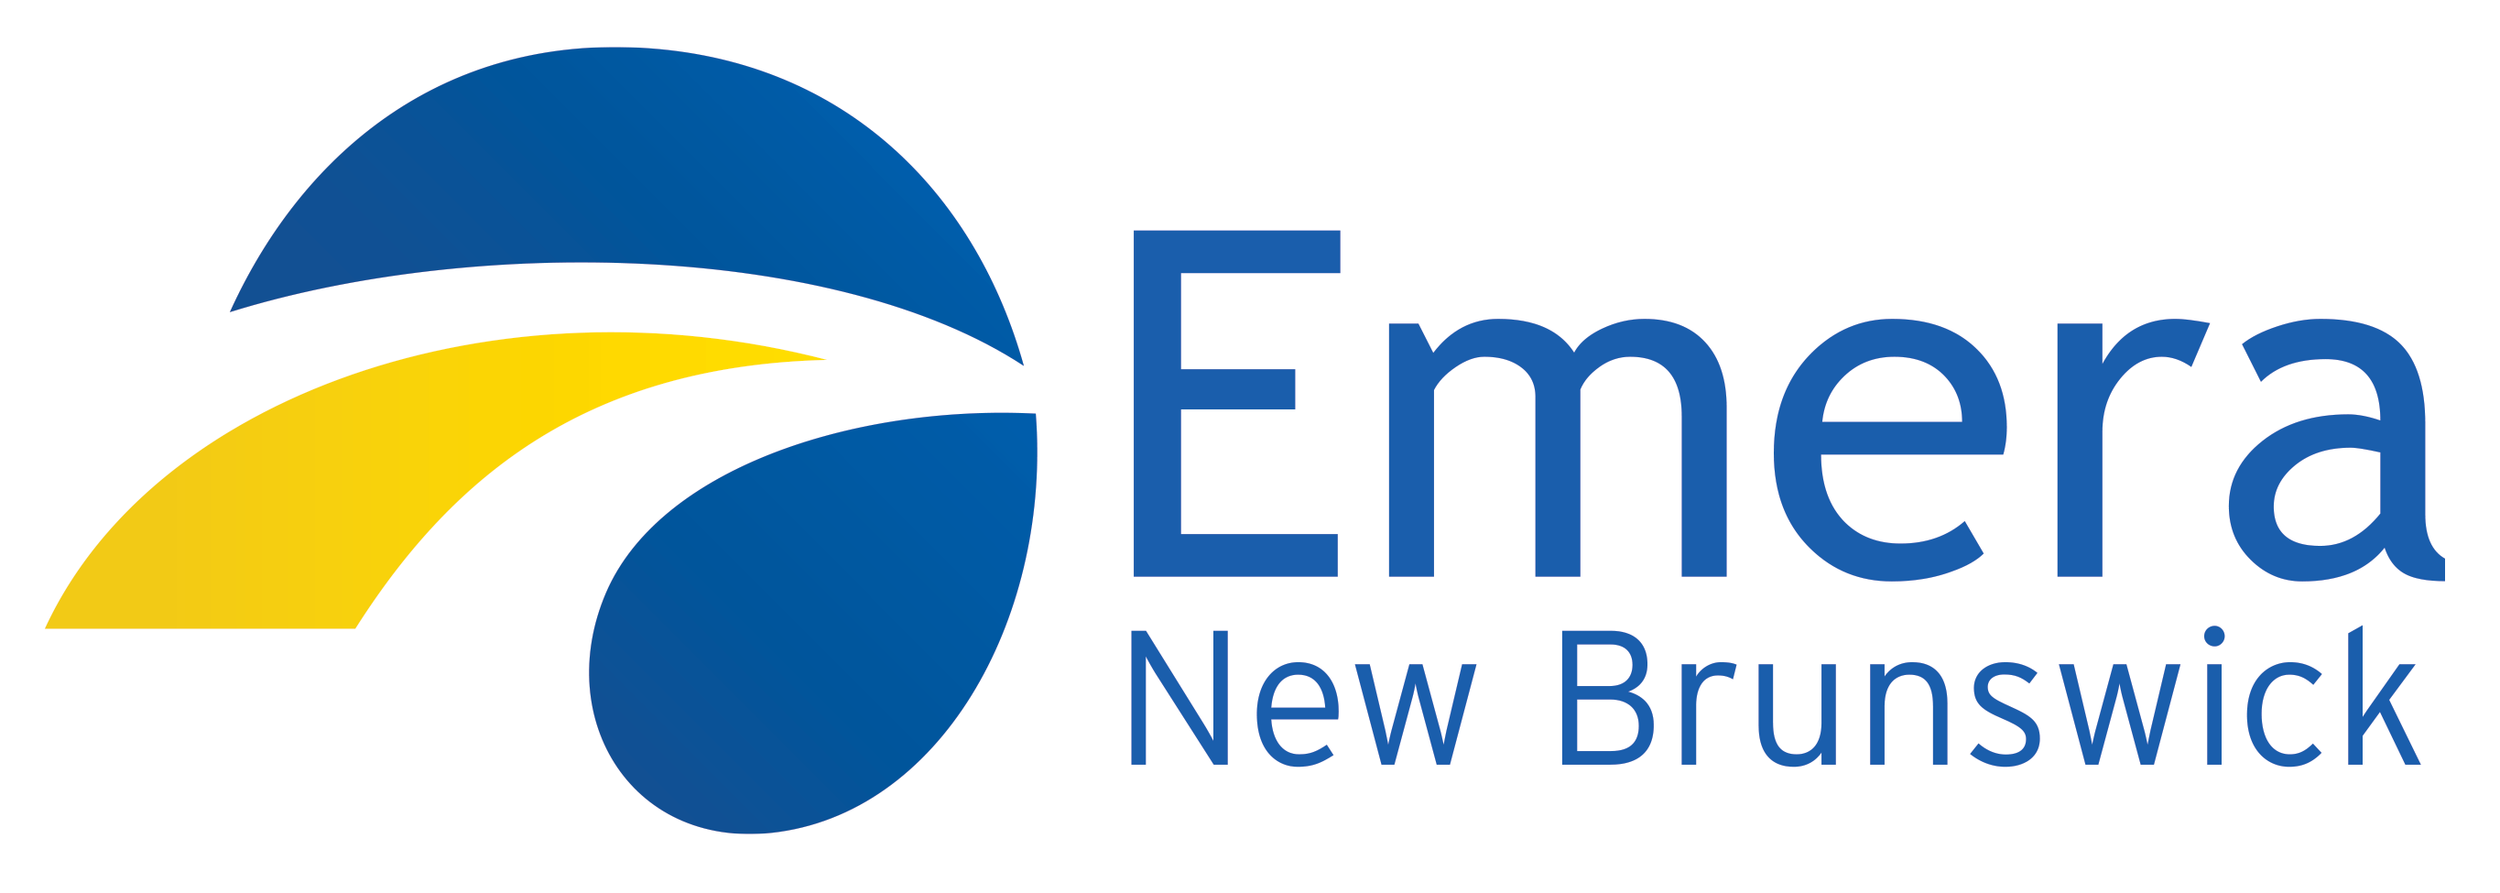 ACAP Saint John is proud to recognize the financial support of Emera New Brunswick for helping to make the 2015 Marsh Creek Eco-Challenge a reality.